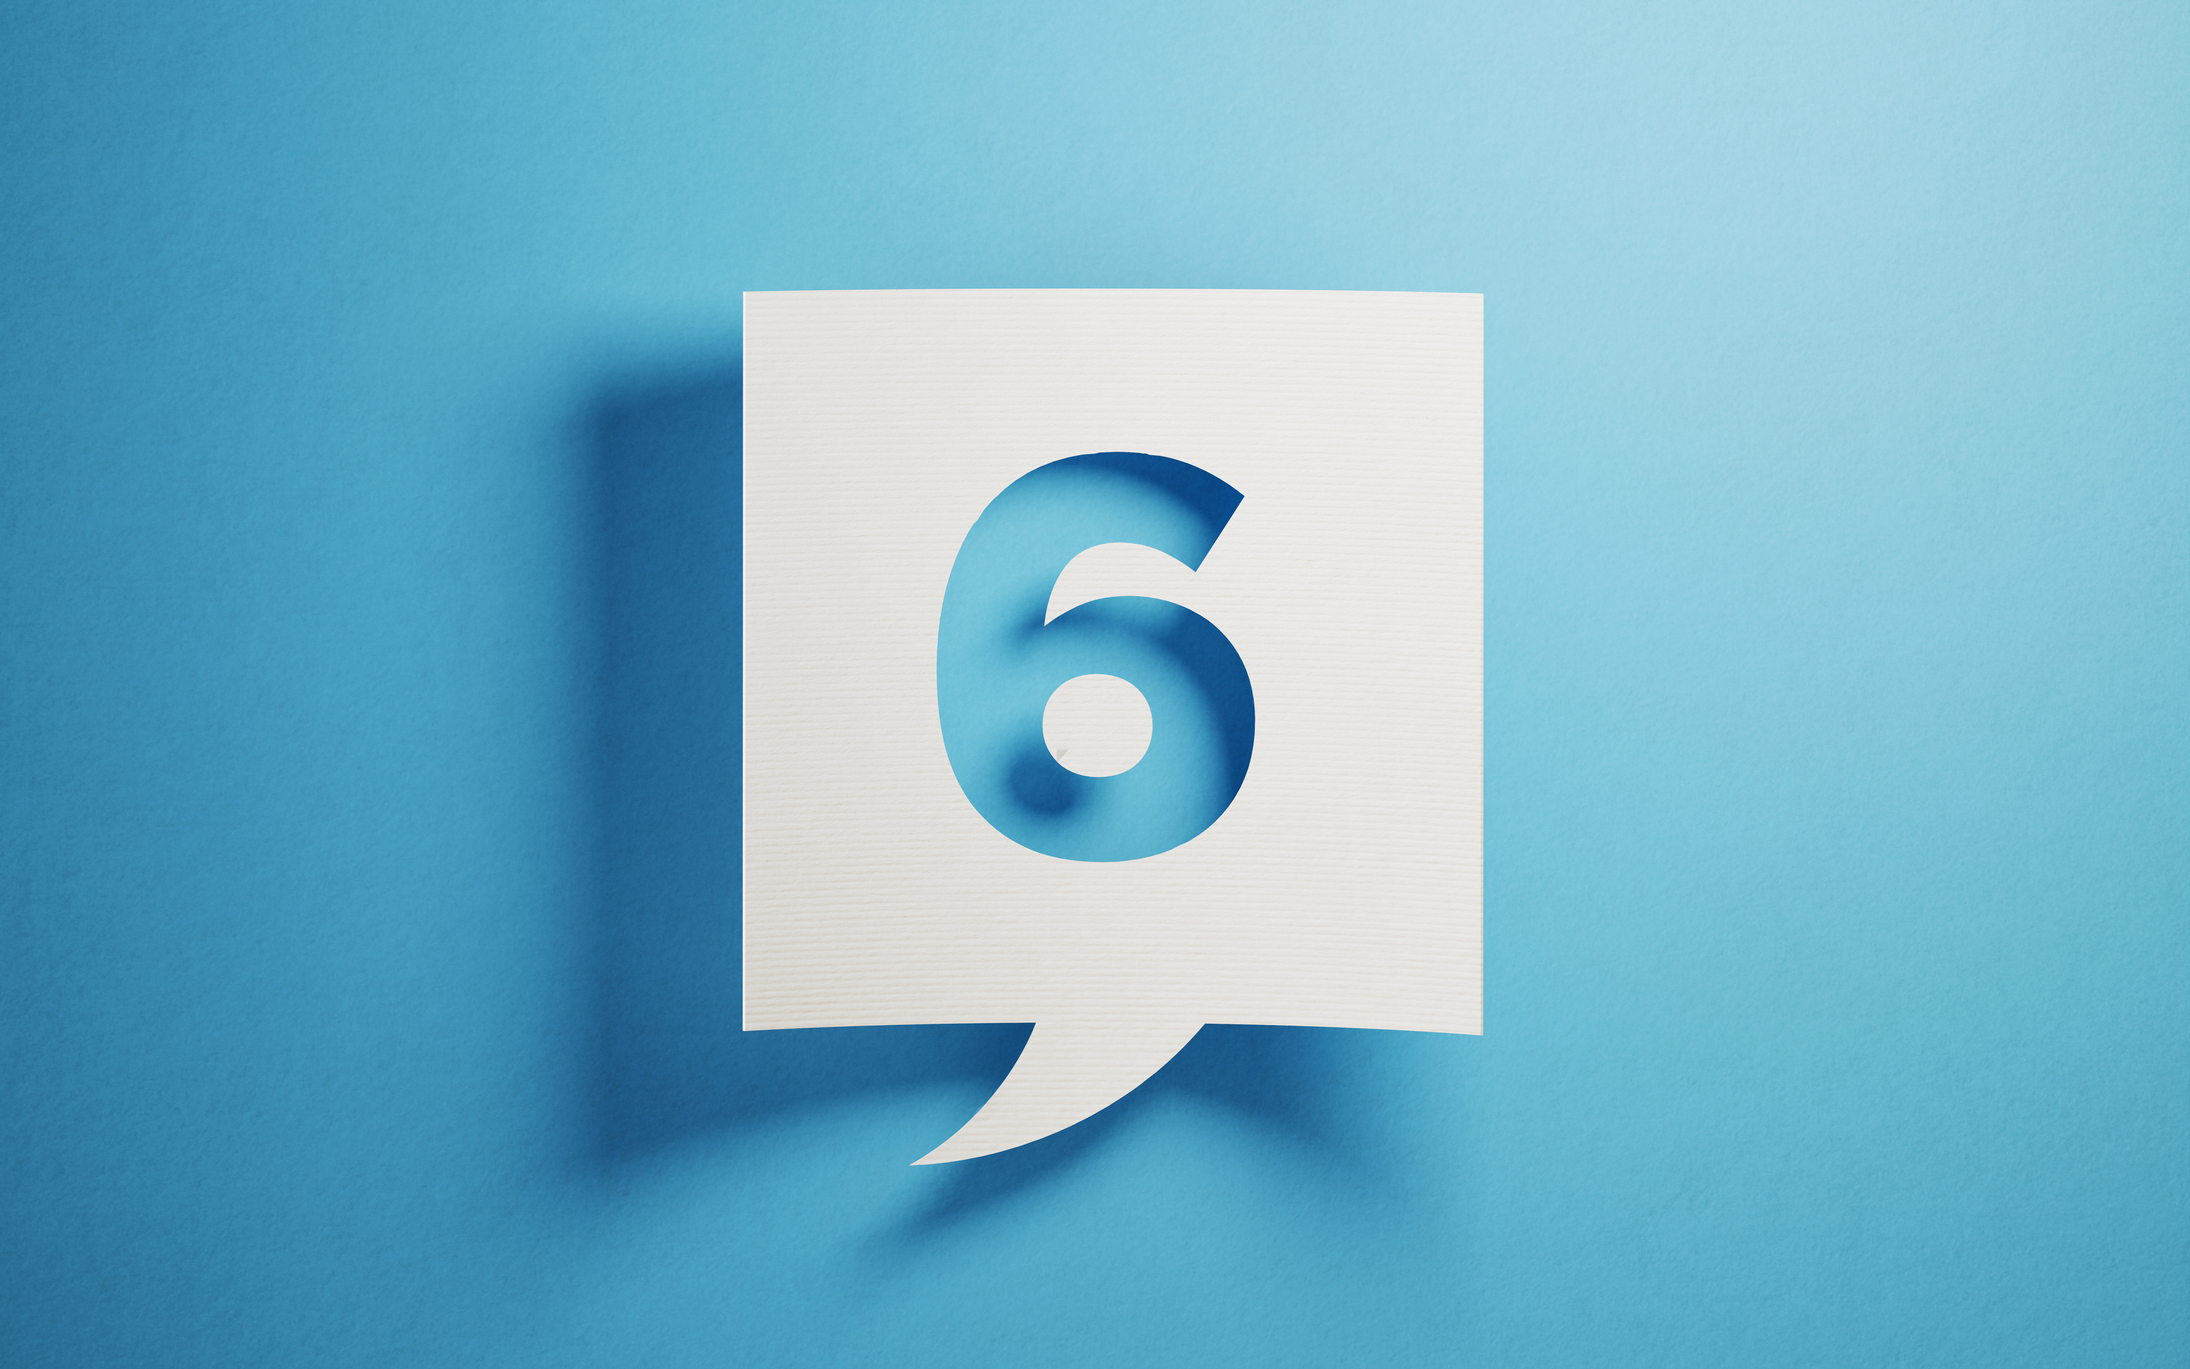 White chat bubble on  blue background. Number six writes on chat bubble. Horizontal composition with copy space.